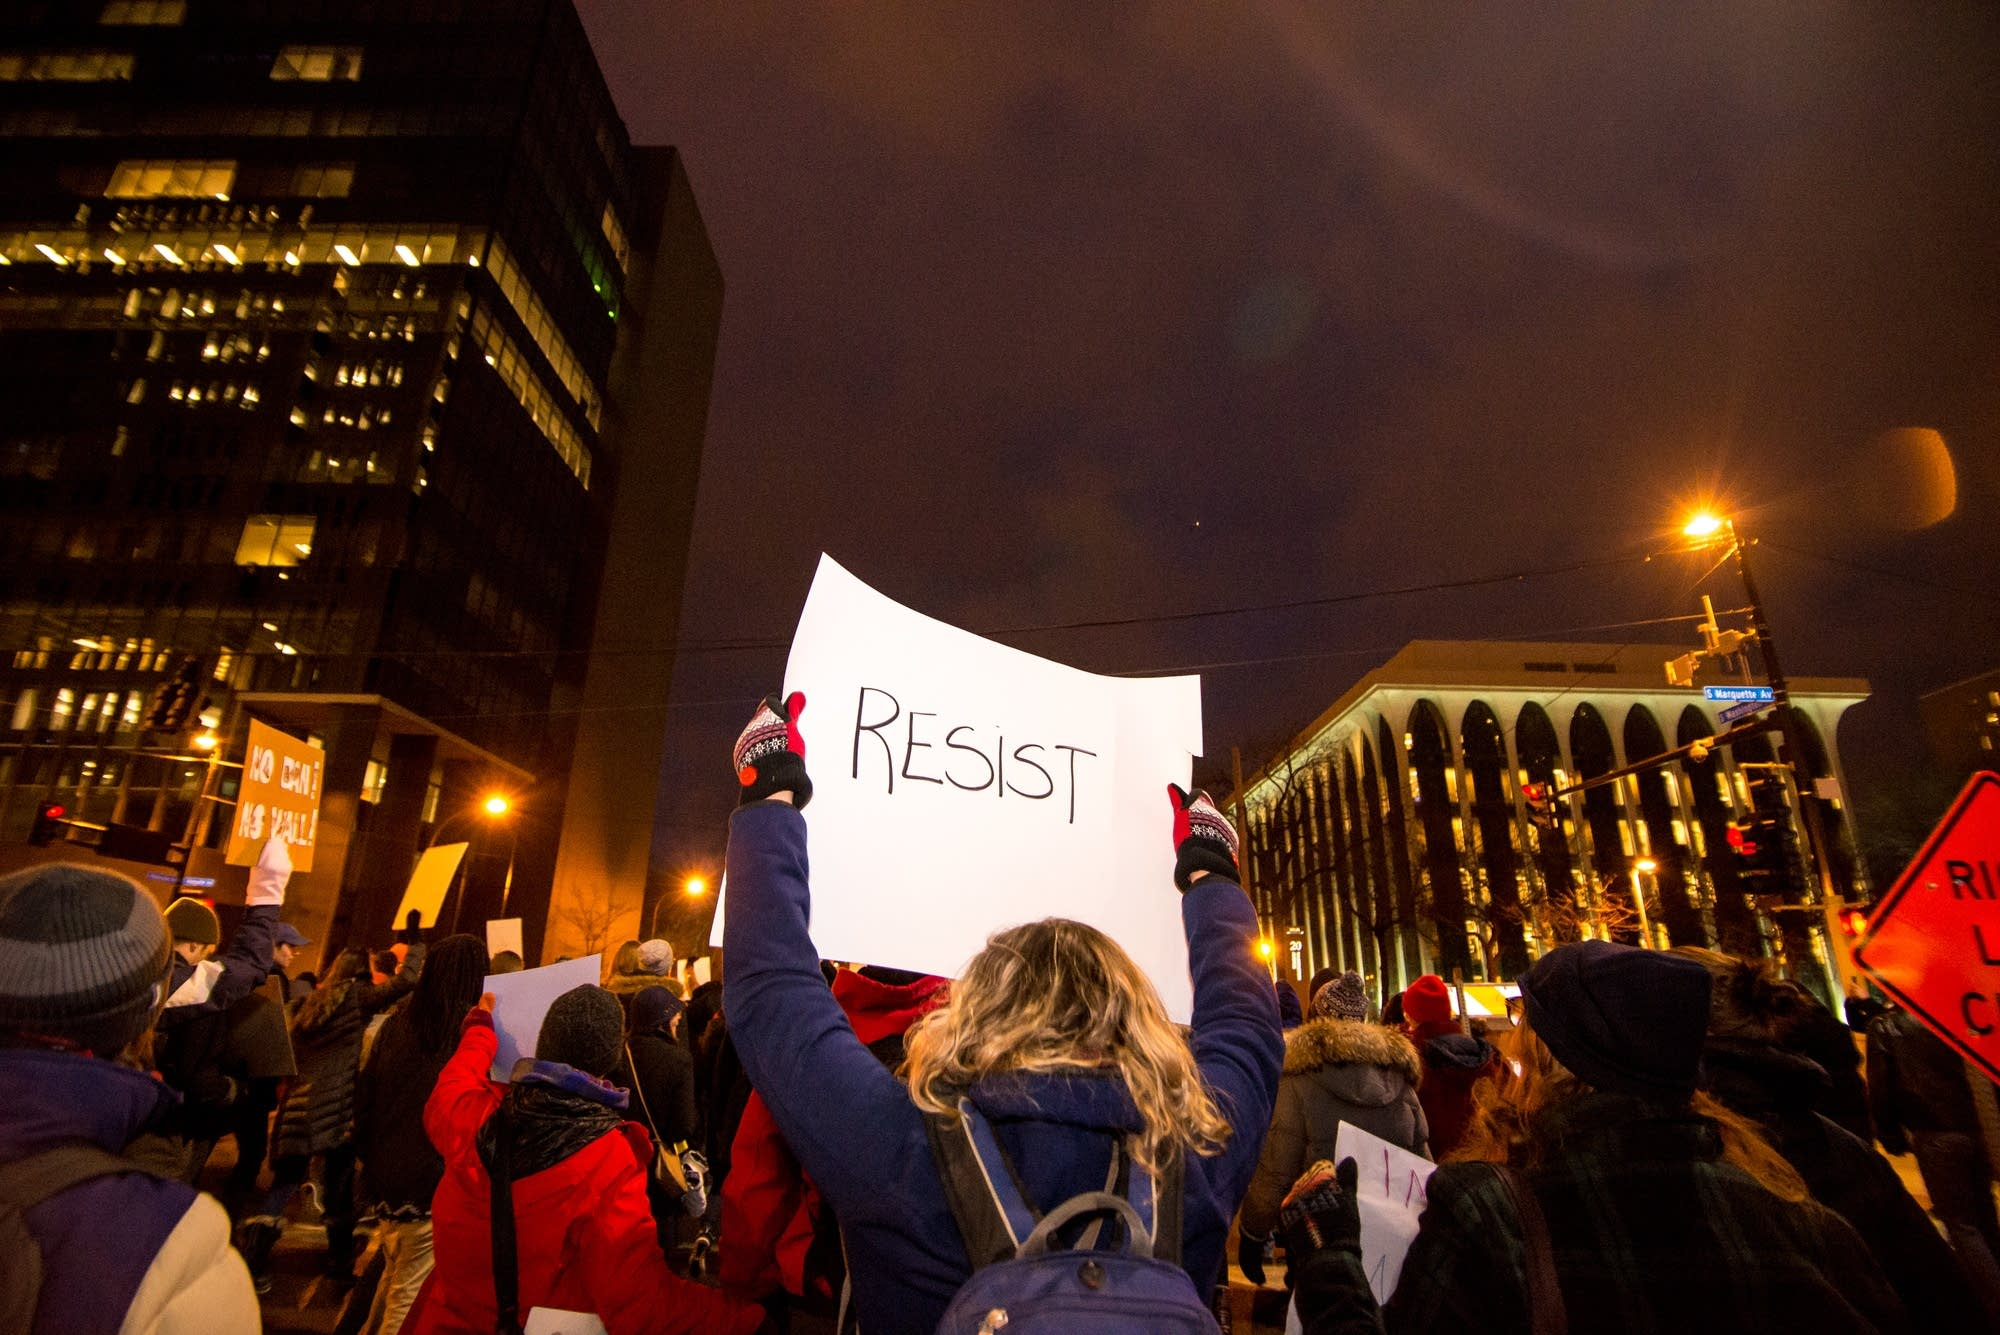 Some 5,000 people protested the president recently.